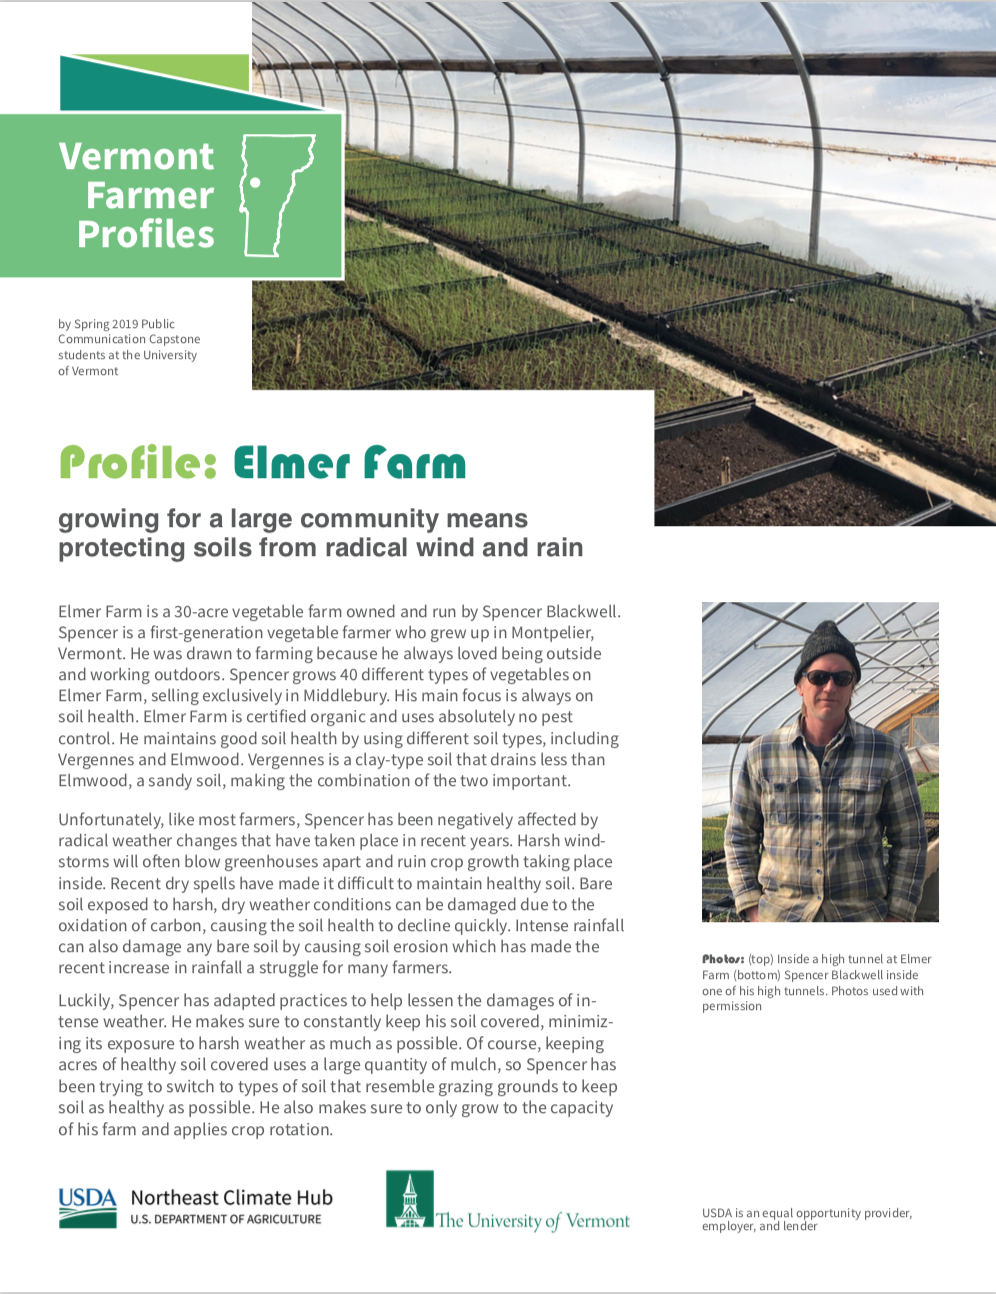 Farmer Profile: Elmer Farm